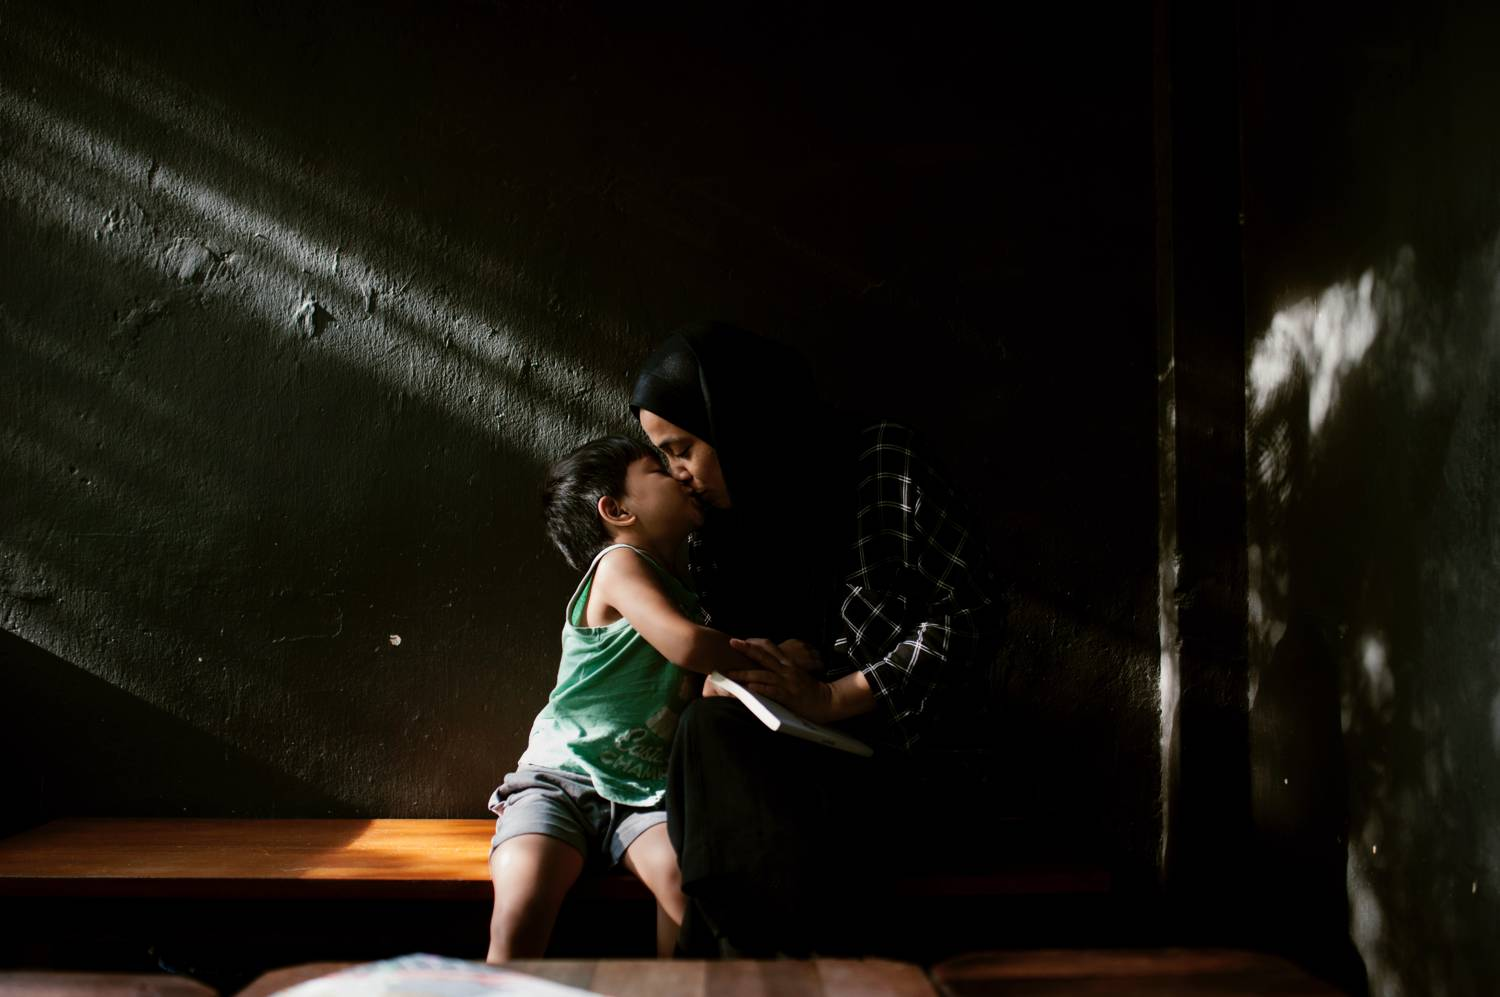 Photo: Min Mohd's moody portrait shows a little boy kissing his mother as they lean into a beam of light.